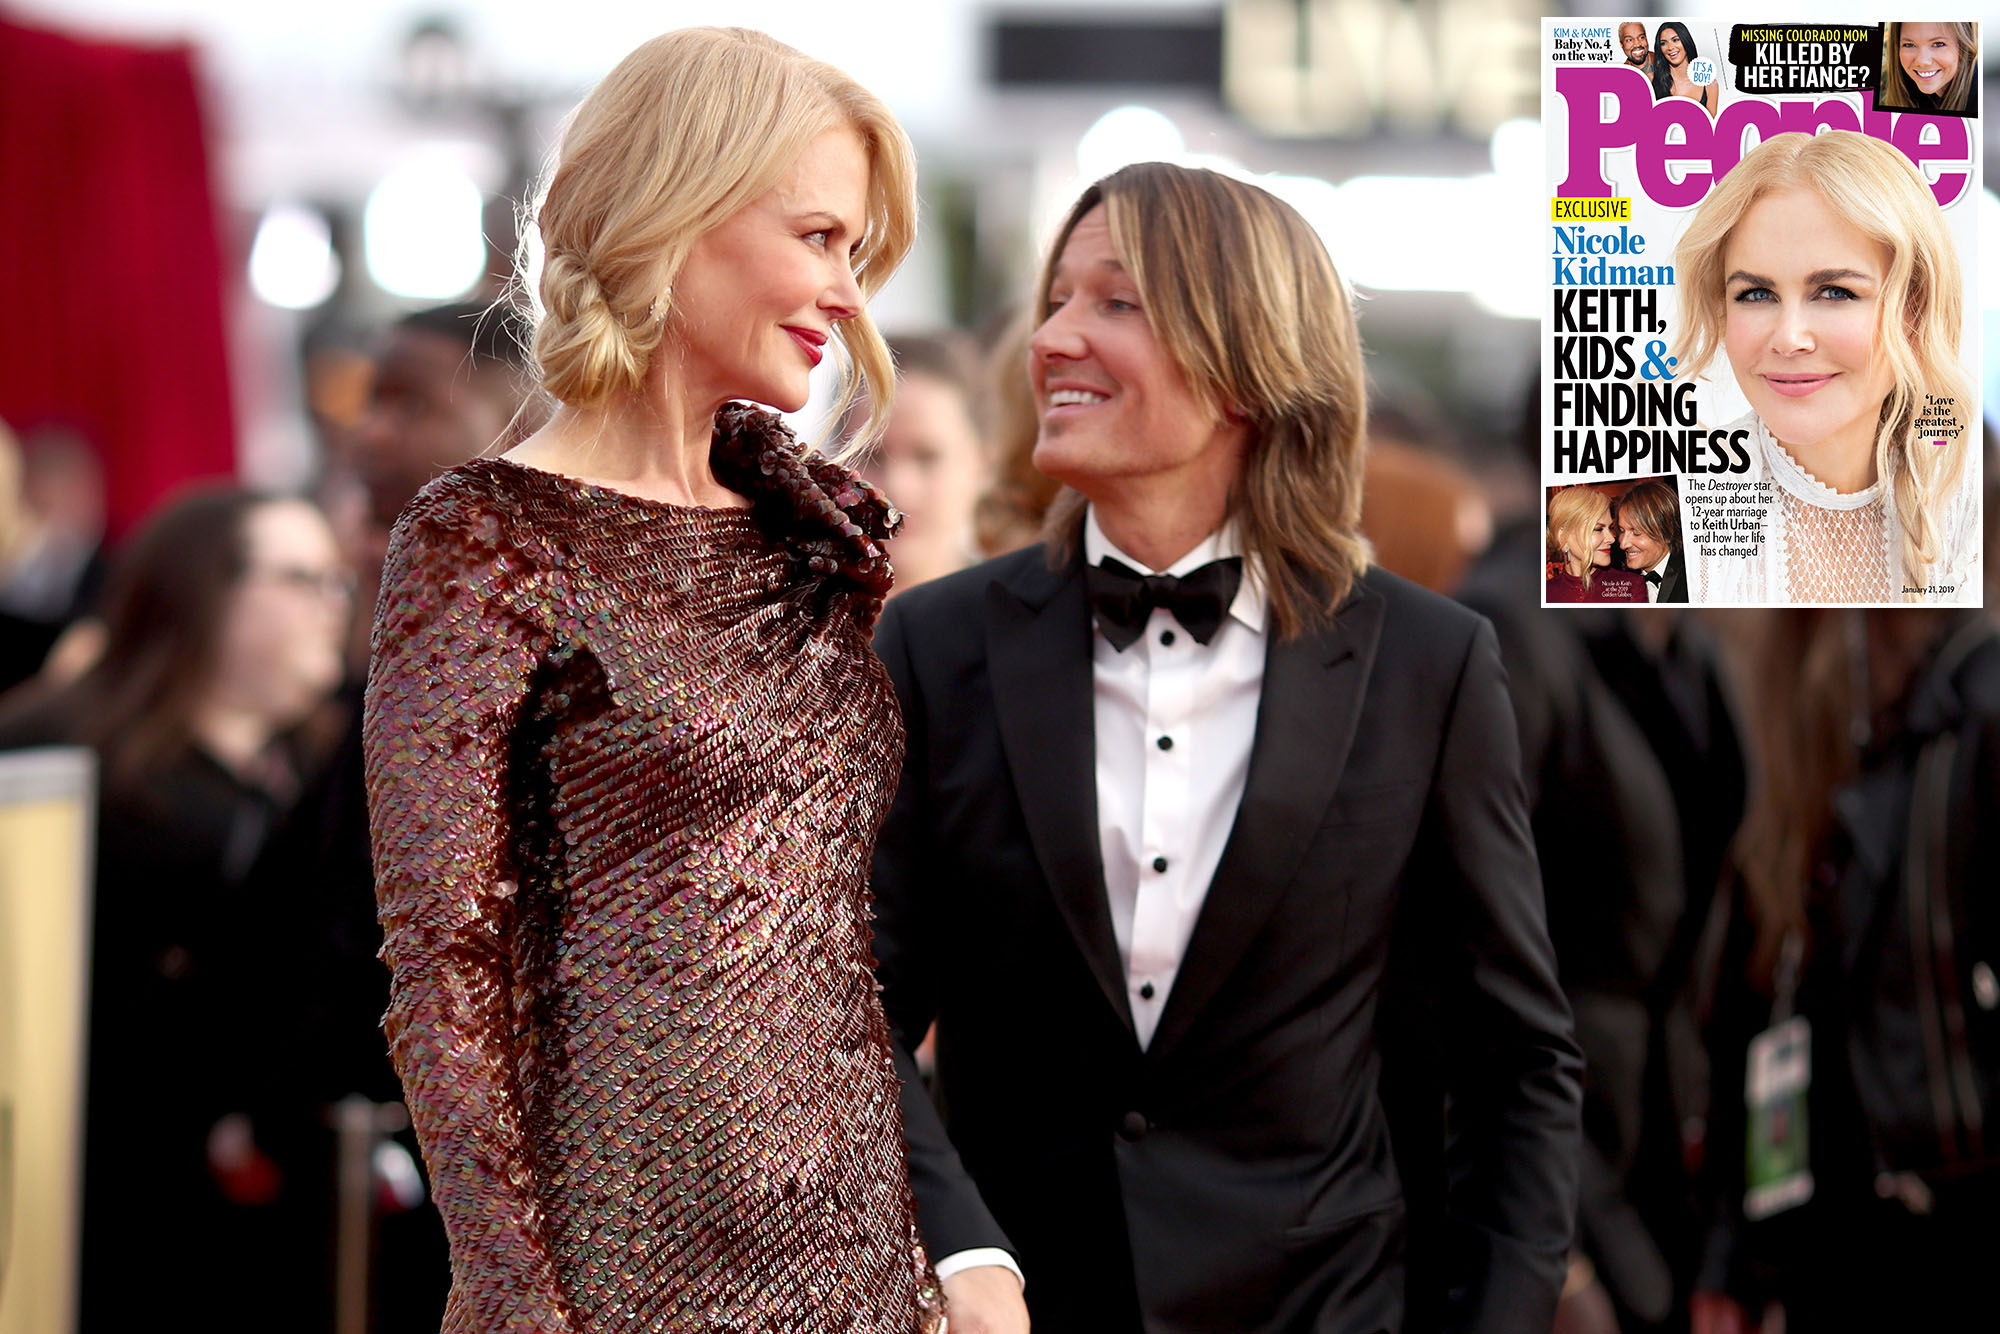 Nicole Kidman Reveals the Super-Sweet Moment She Knew Keith Urban Was 'The Love of My Life' nicole2